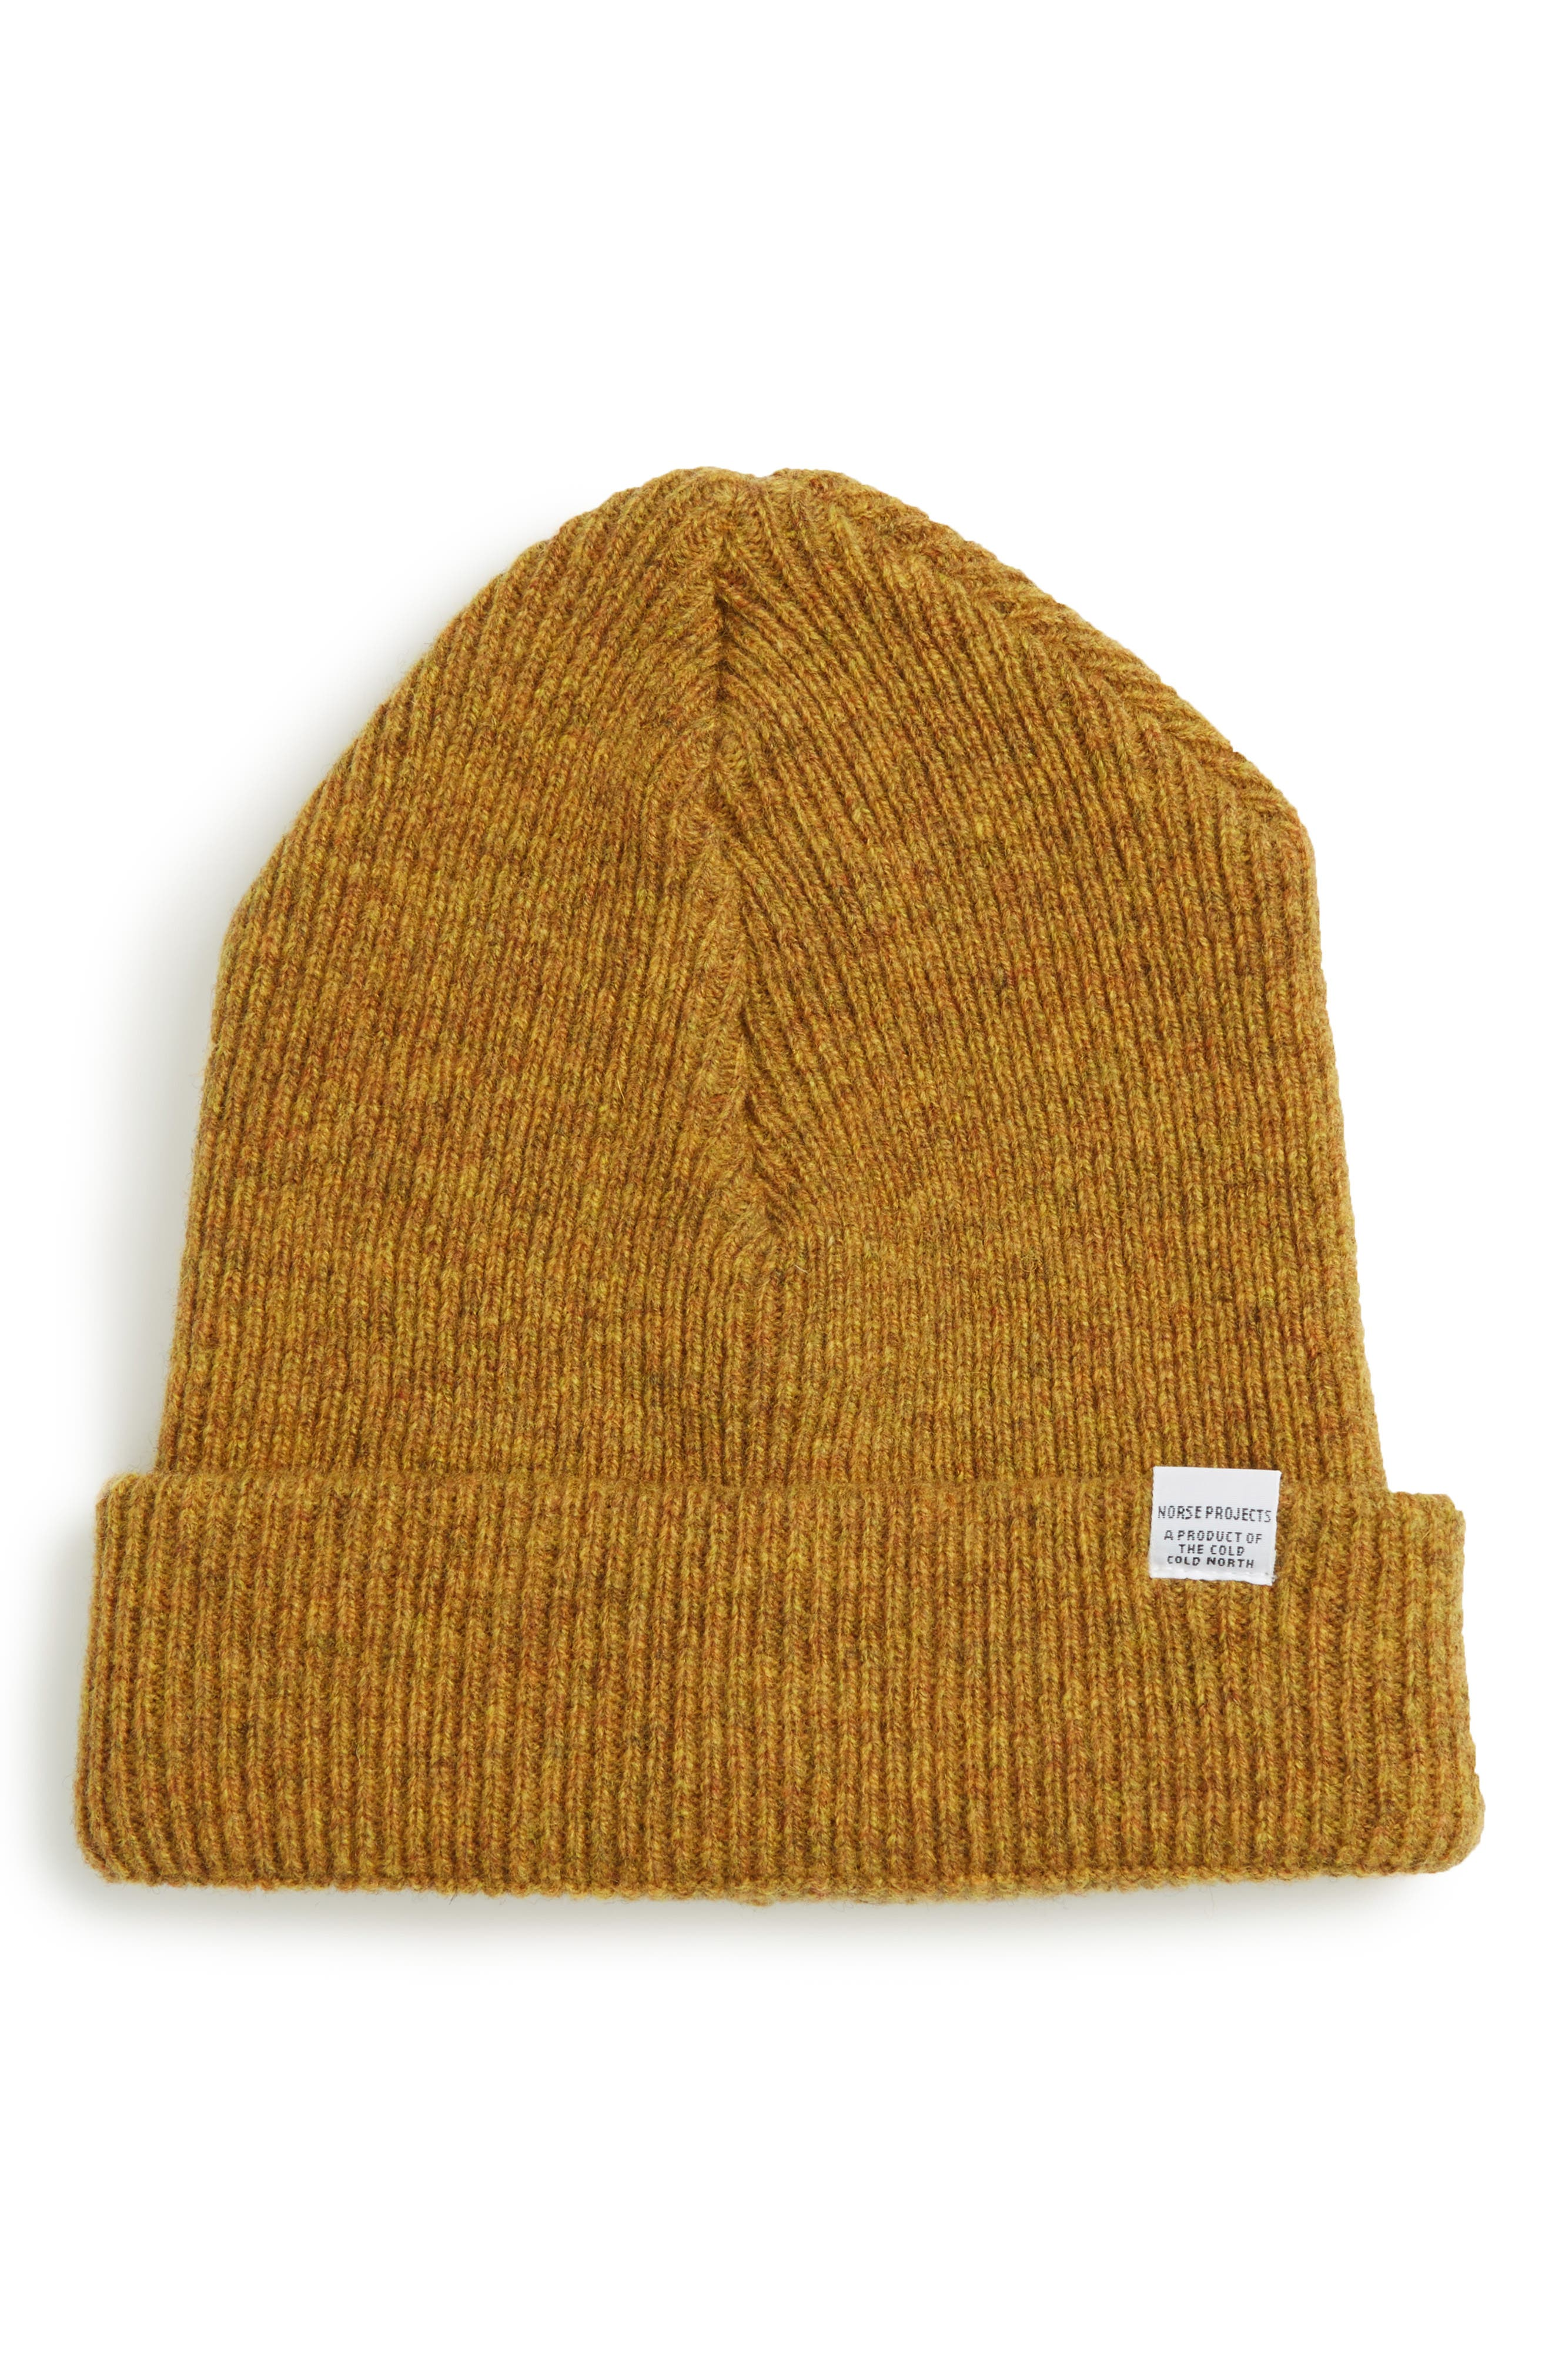 Main Image - Norse Project Wool Knit Cap